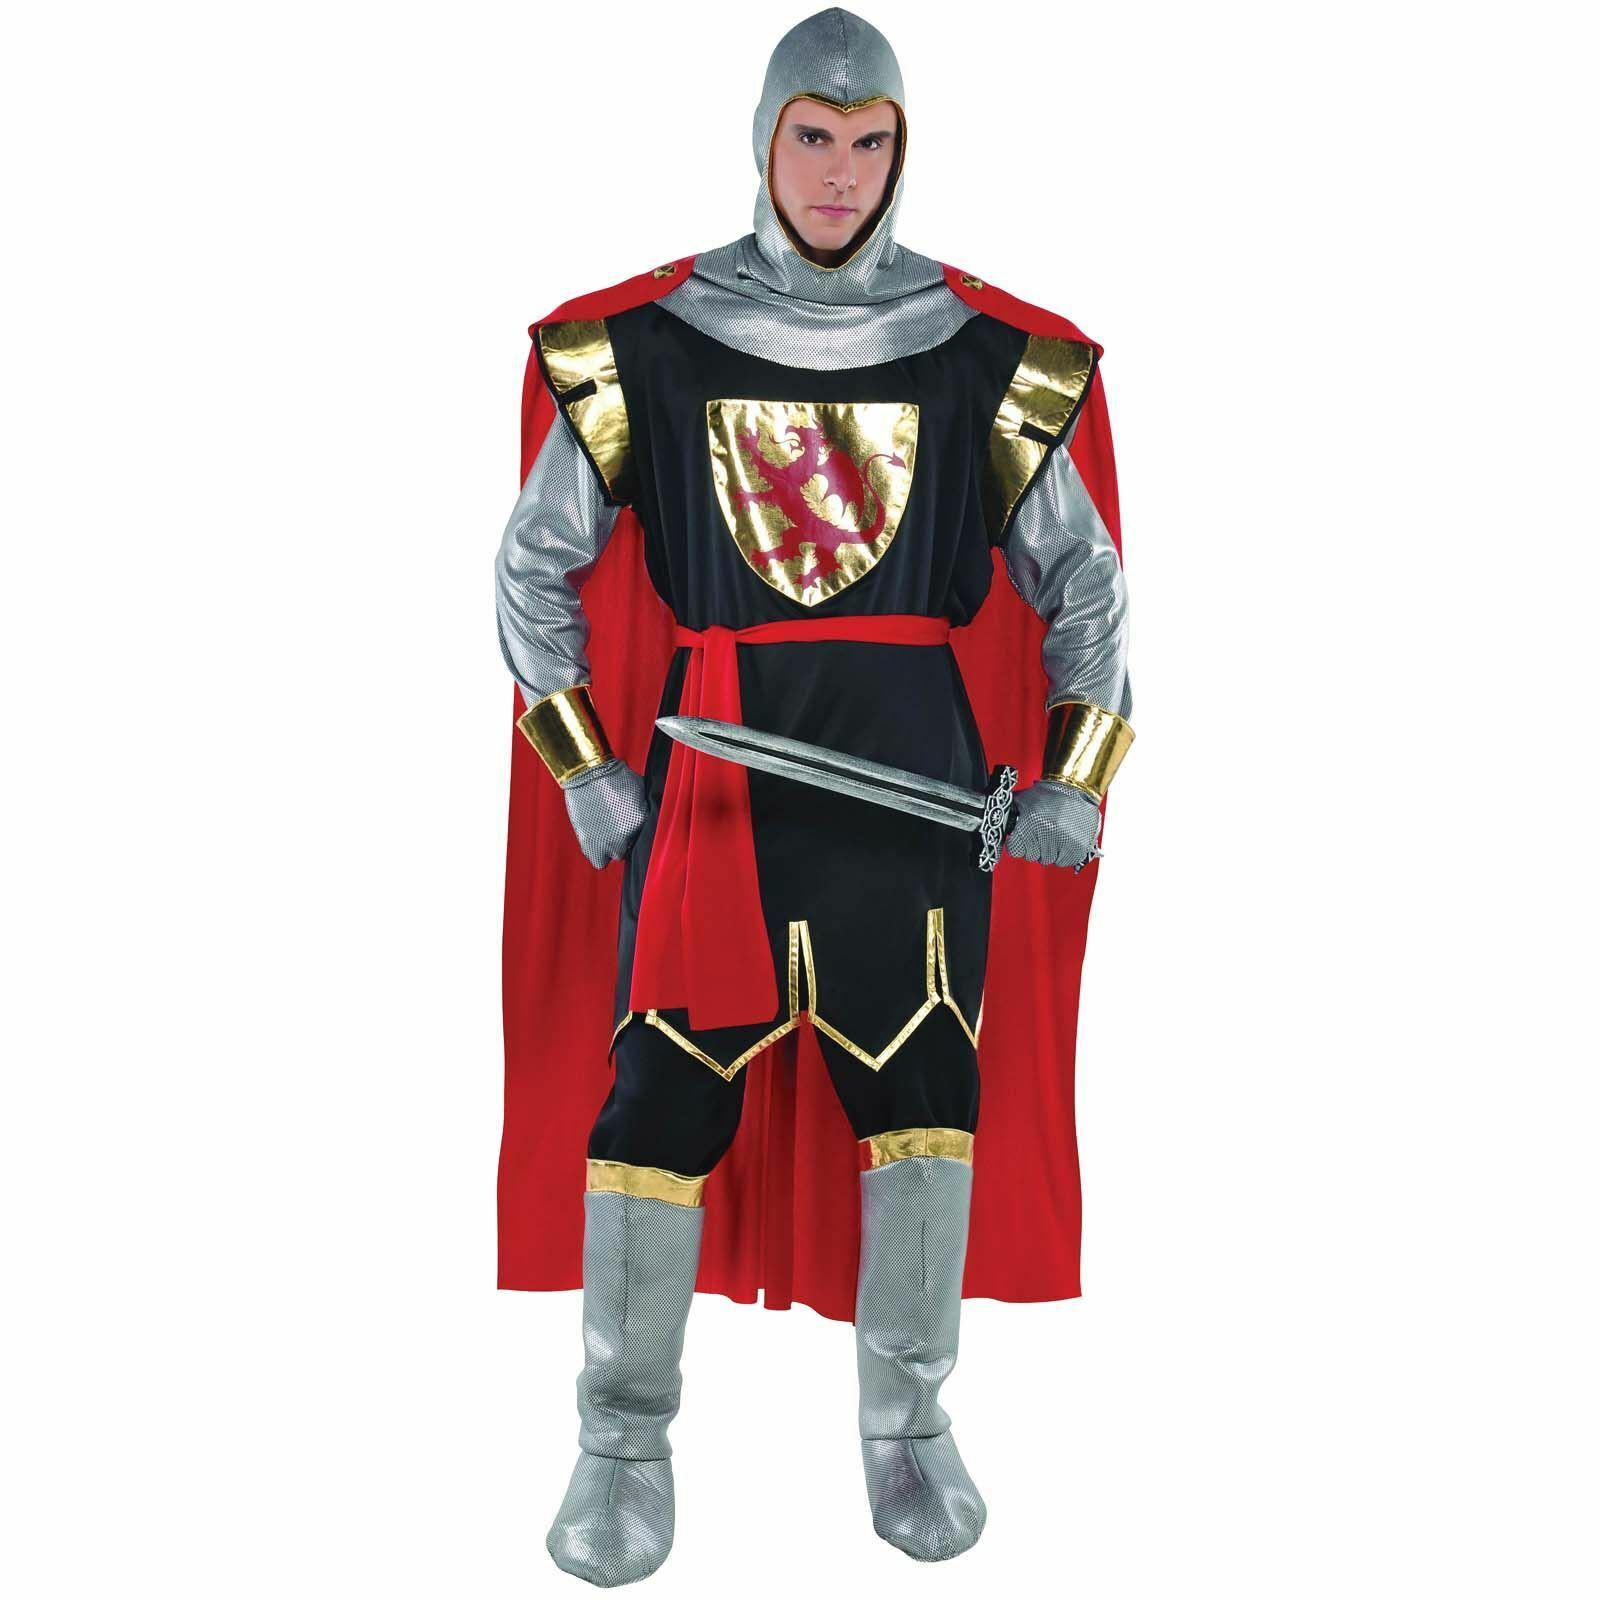 Deluxe Brave Crusader Knight Medieval Fancy Dress Men's Costume Adult Outfit